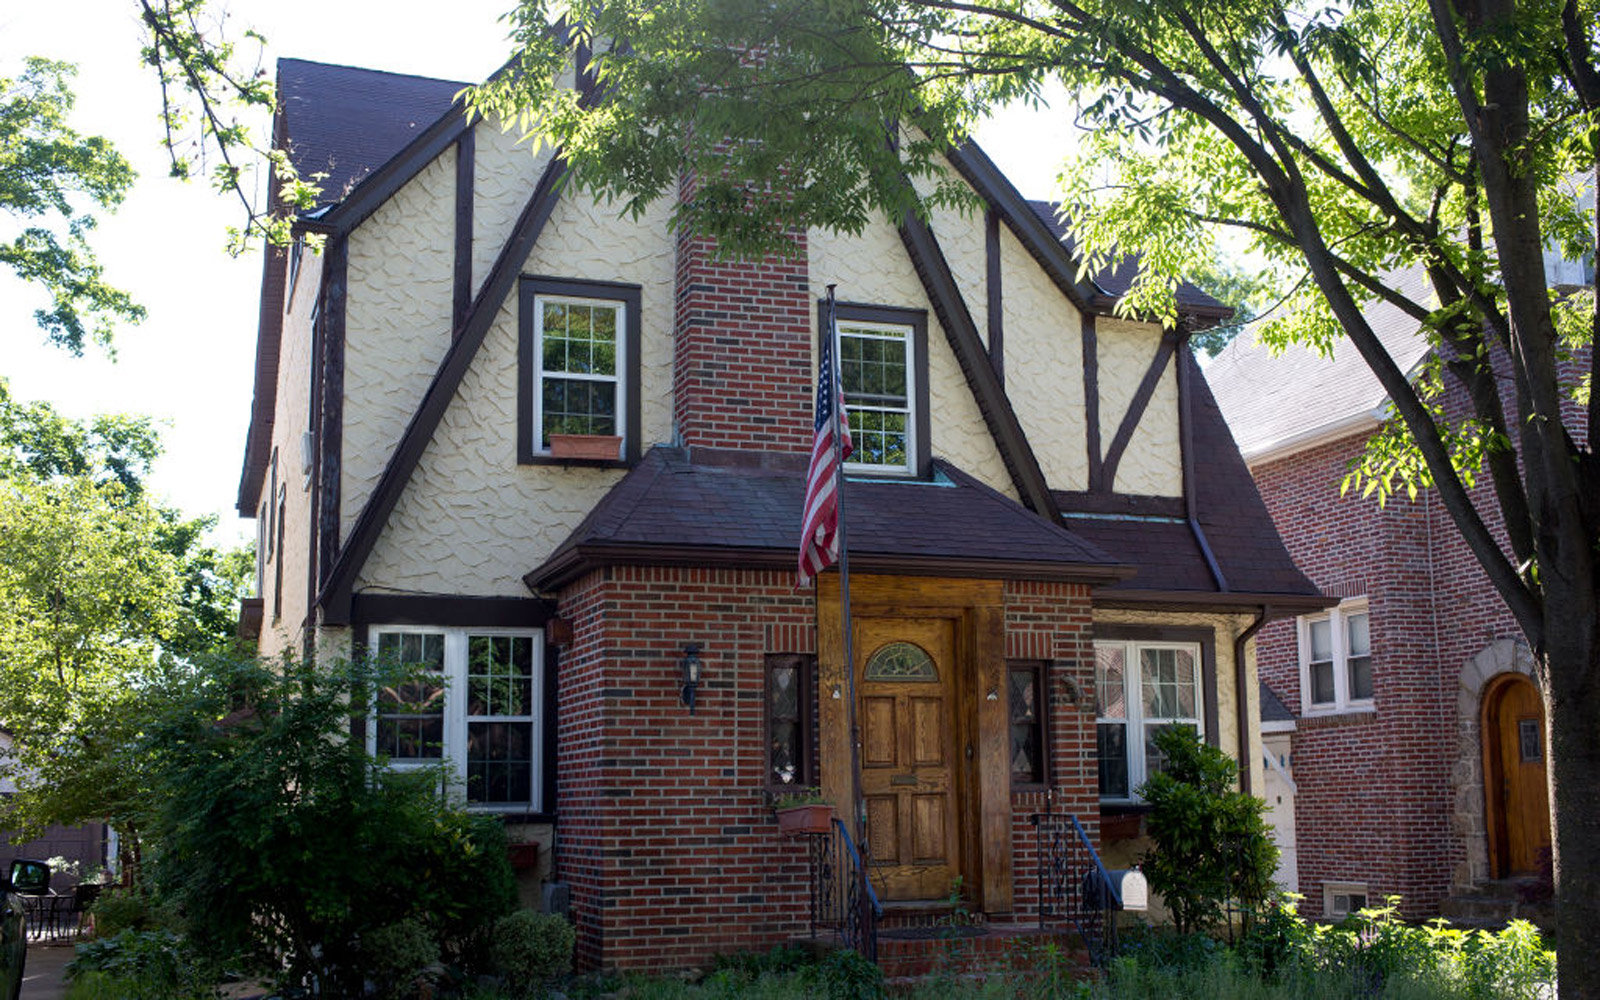 QUEENS, NY - JUNE 4: Donald Trump's early childhood home is lies unoccupied in the well kept neighborhood of Jamaica Estates on June 4, 2017 in Queens, New York. A foreign investor has purchased the home and there has been speculation that it will become